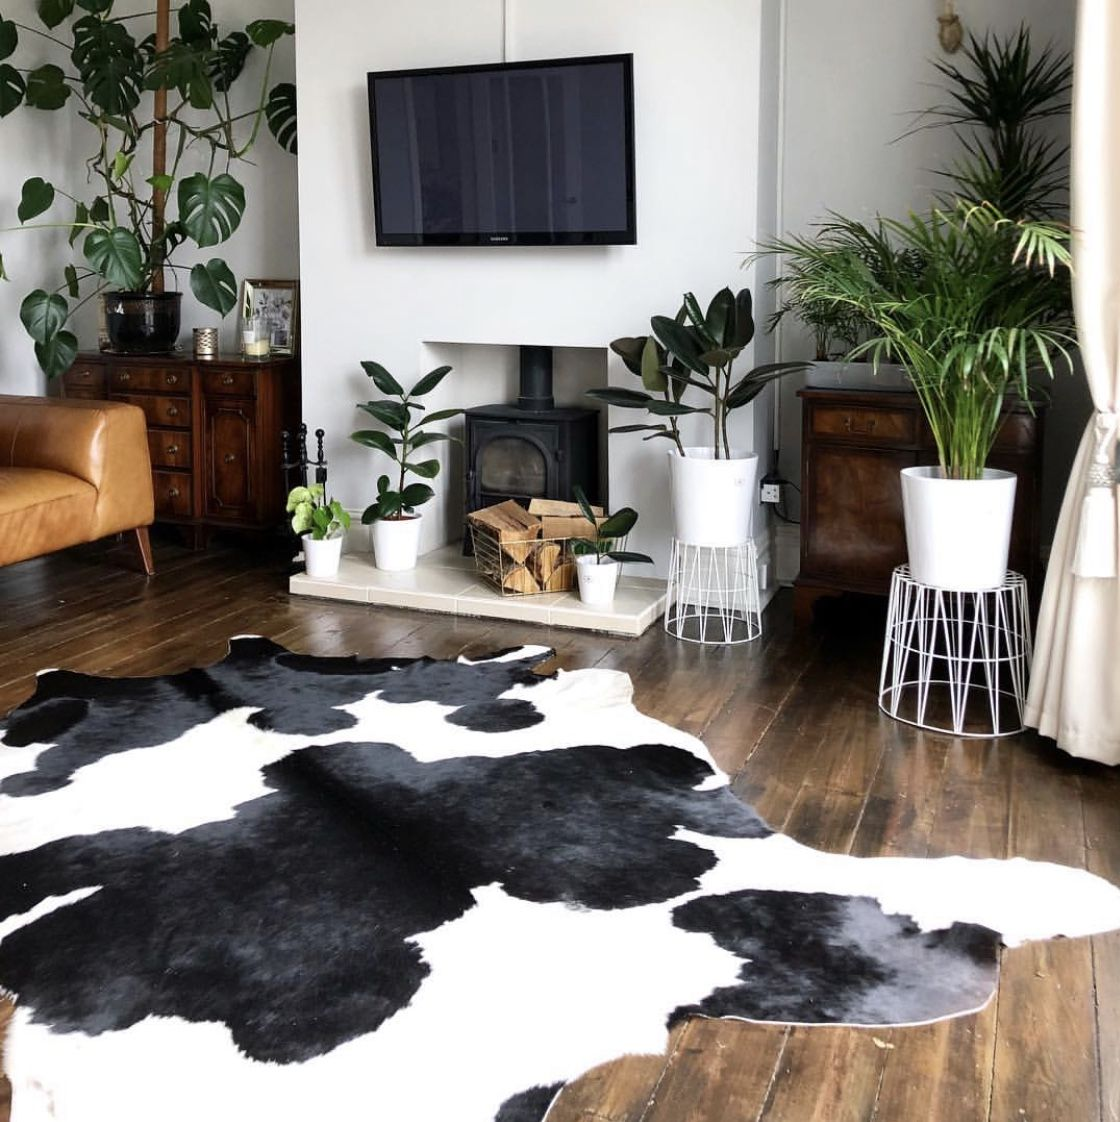 Black And White Leather Cowhide Rug In 2020 Black And White Living Room White Living Room Decor Hide Rug Living Room